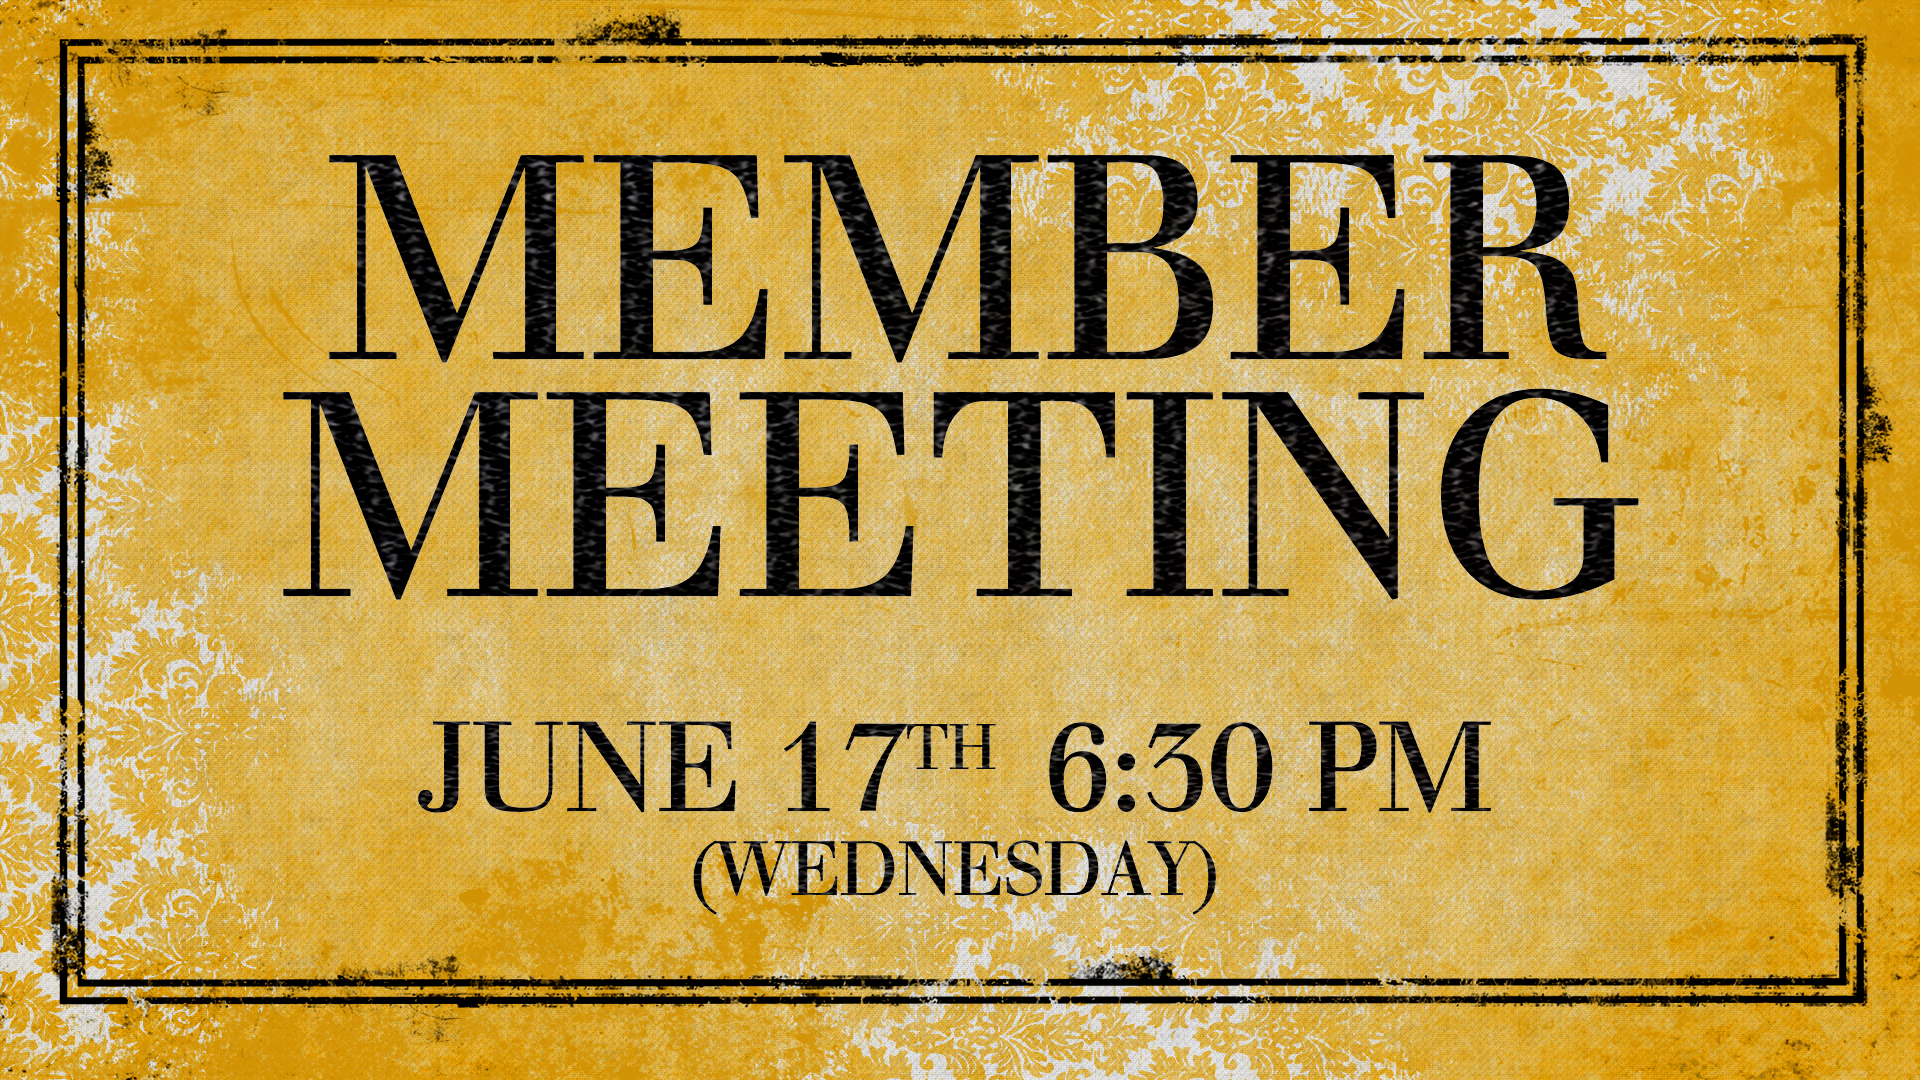 Member Meeting image